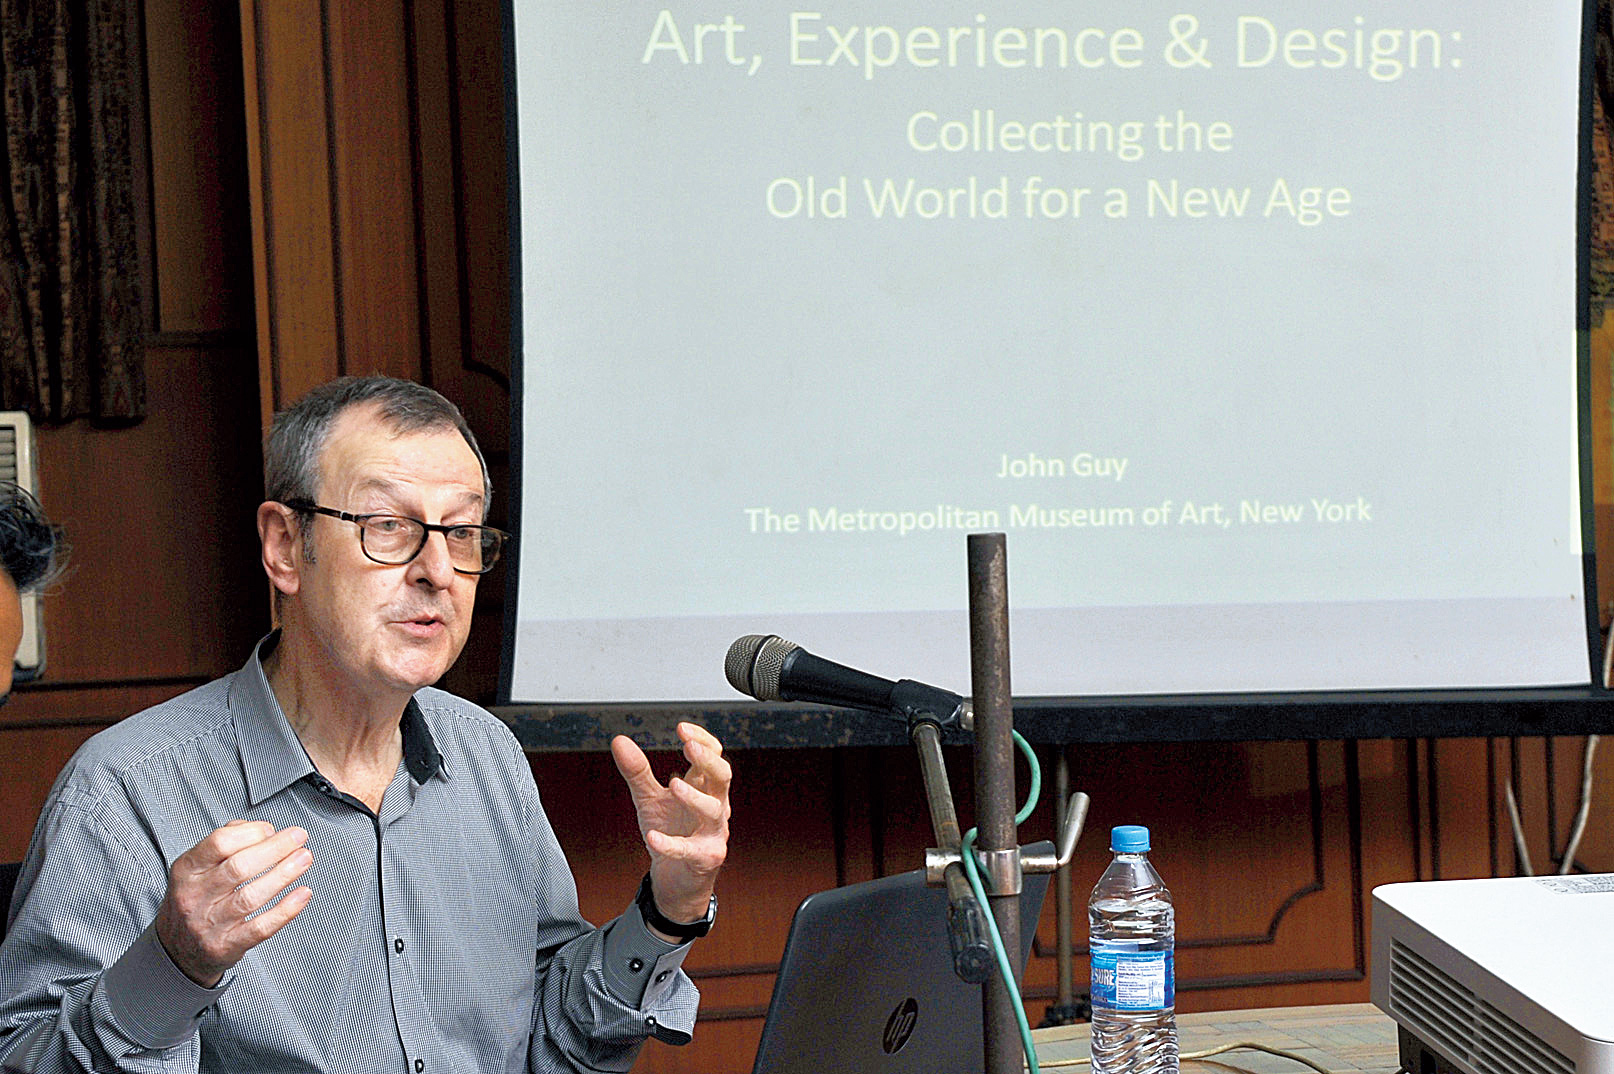 John Guy delivers a lecture on Collecting the Past: Old World-New Age at Indian Museum on Thursday.